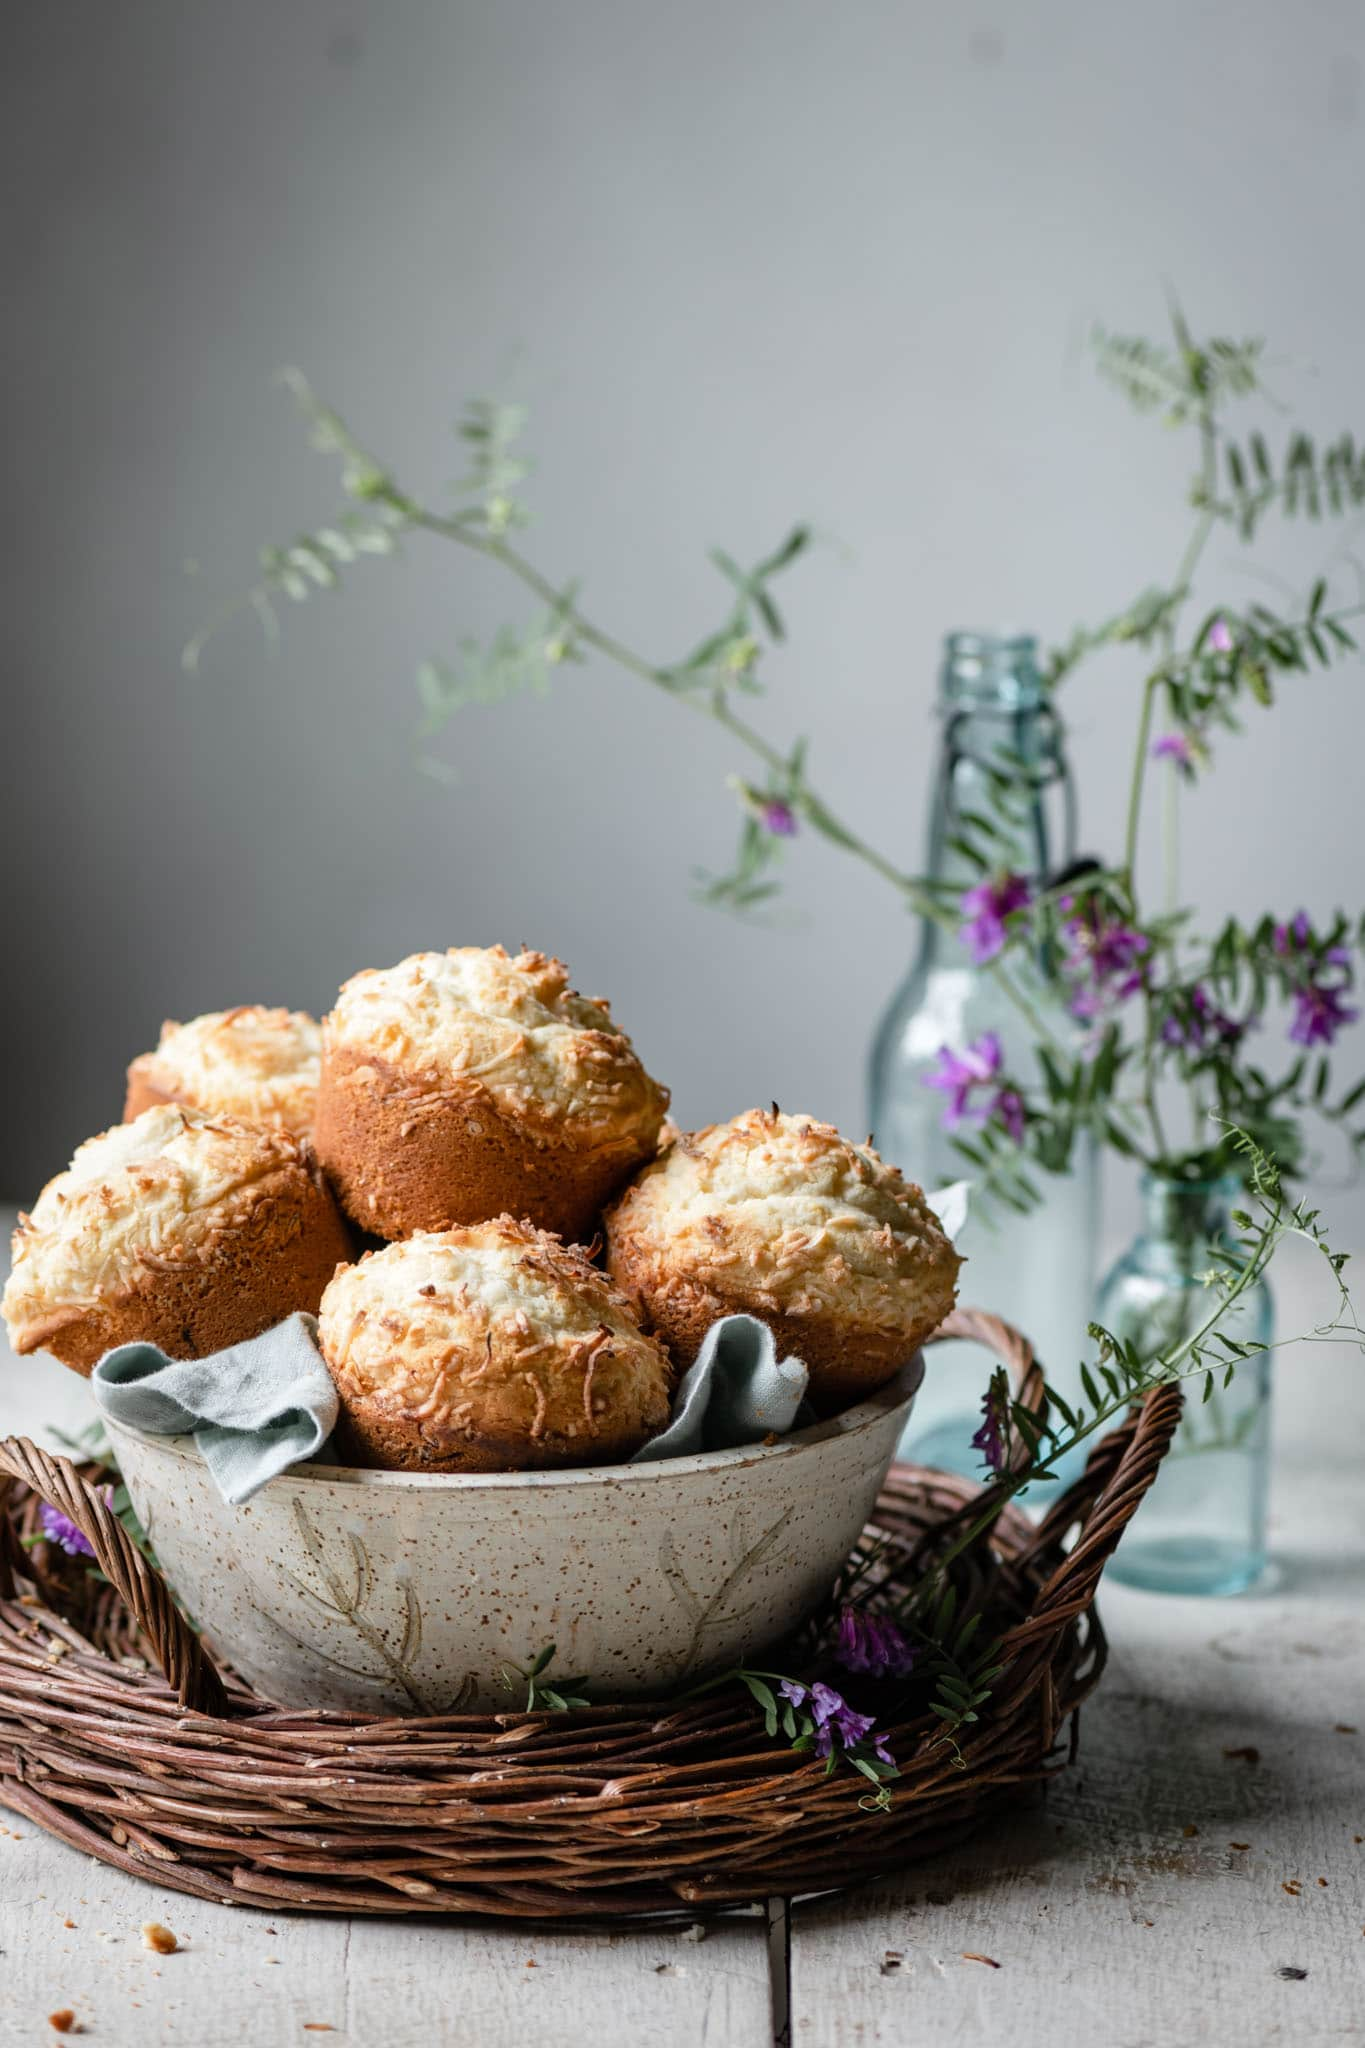 Bowl full of coconut topped muffins on a white table next to flowers.